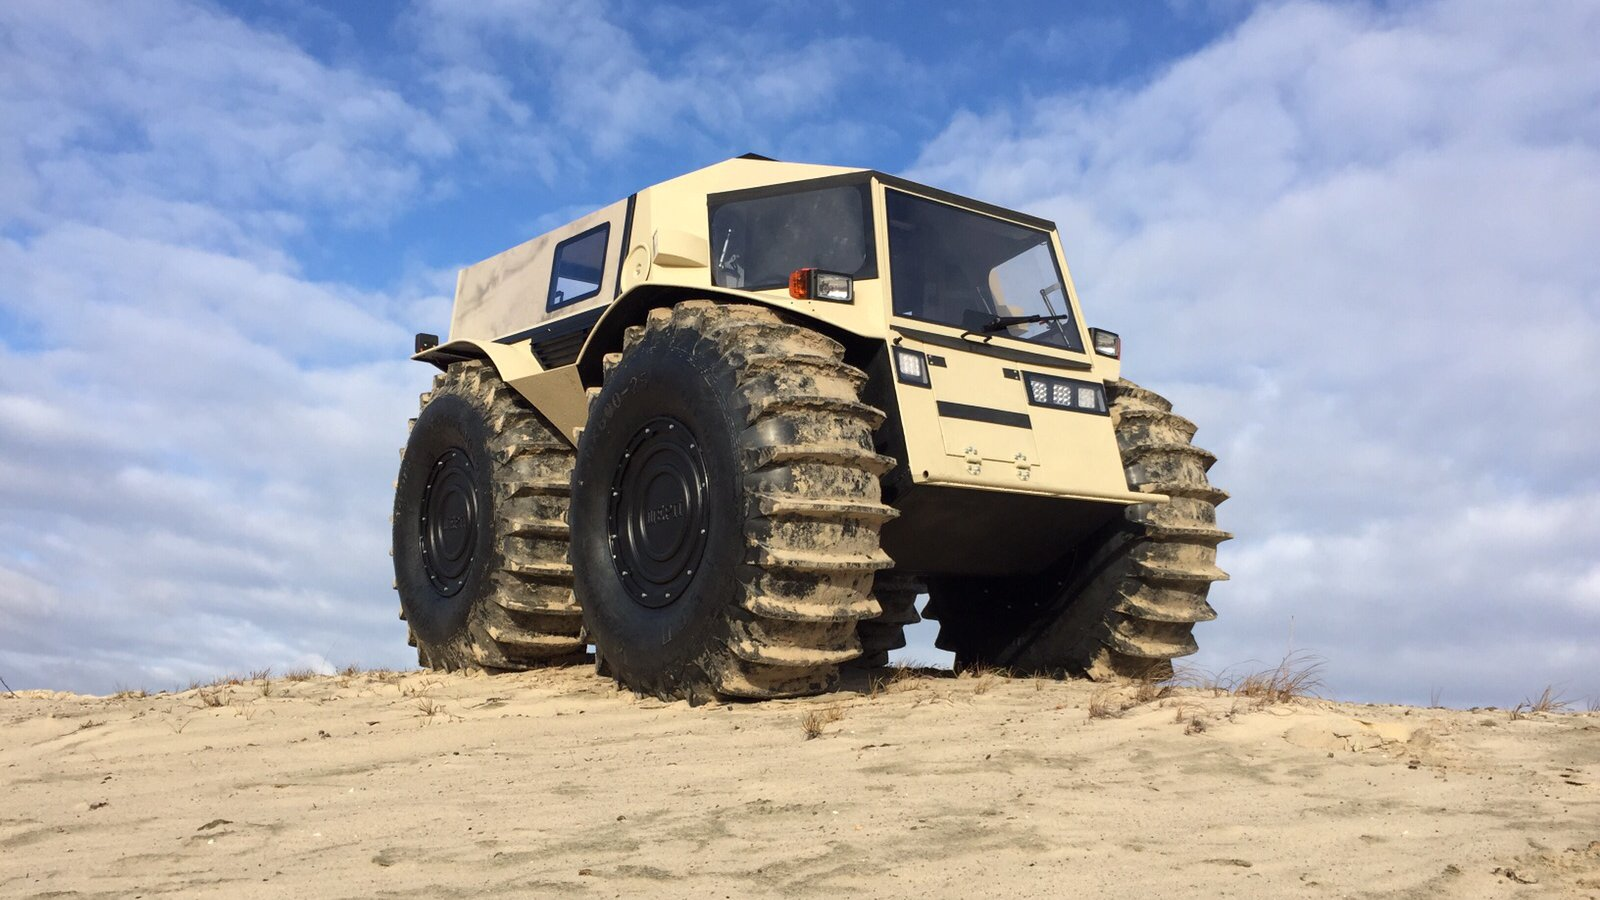 The Sherp, a Russian-made all-terrain vehicle